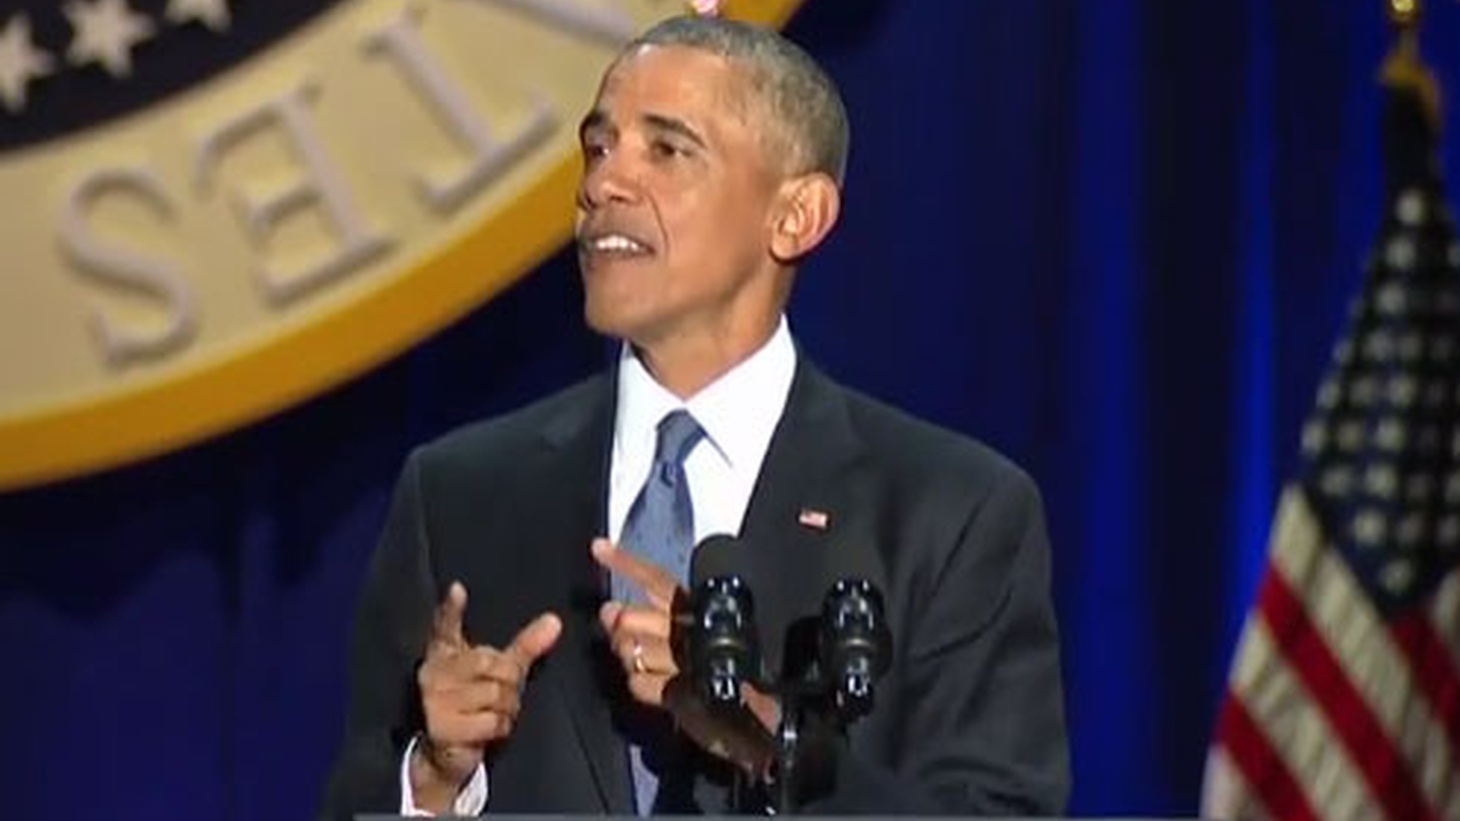 President Obama addressed  an adoring crowd last night in Chicago, where he began his public career as a community organizer. He touted his accomplishments after eight years in the White House. He also spoke to the likely disappointment of his supporters in his elected successor.